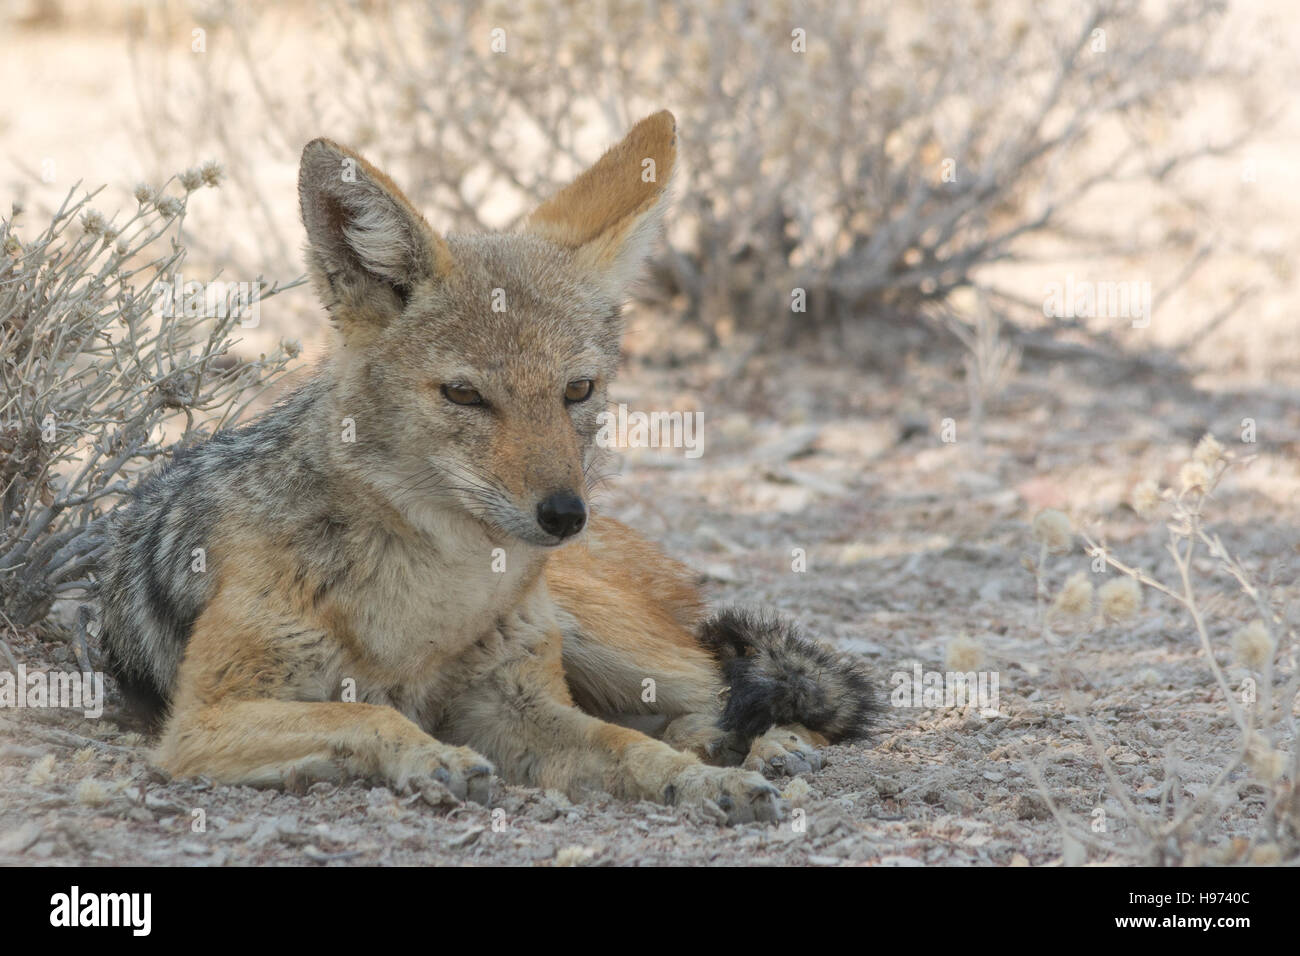 Black-Backed Jackal, seen in namibia, africa. - Stock Image